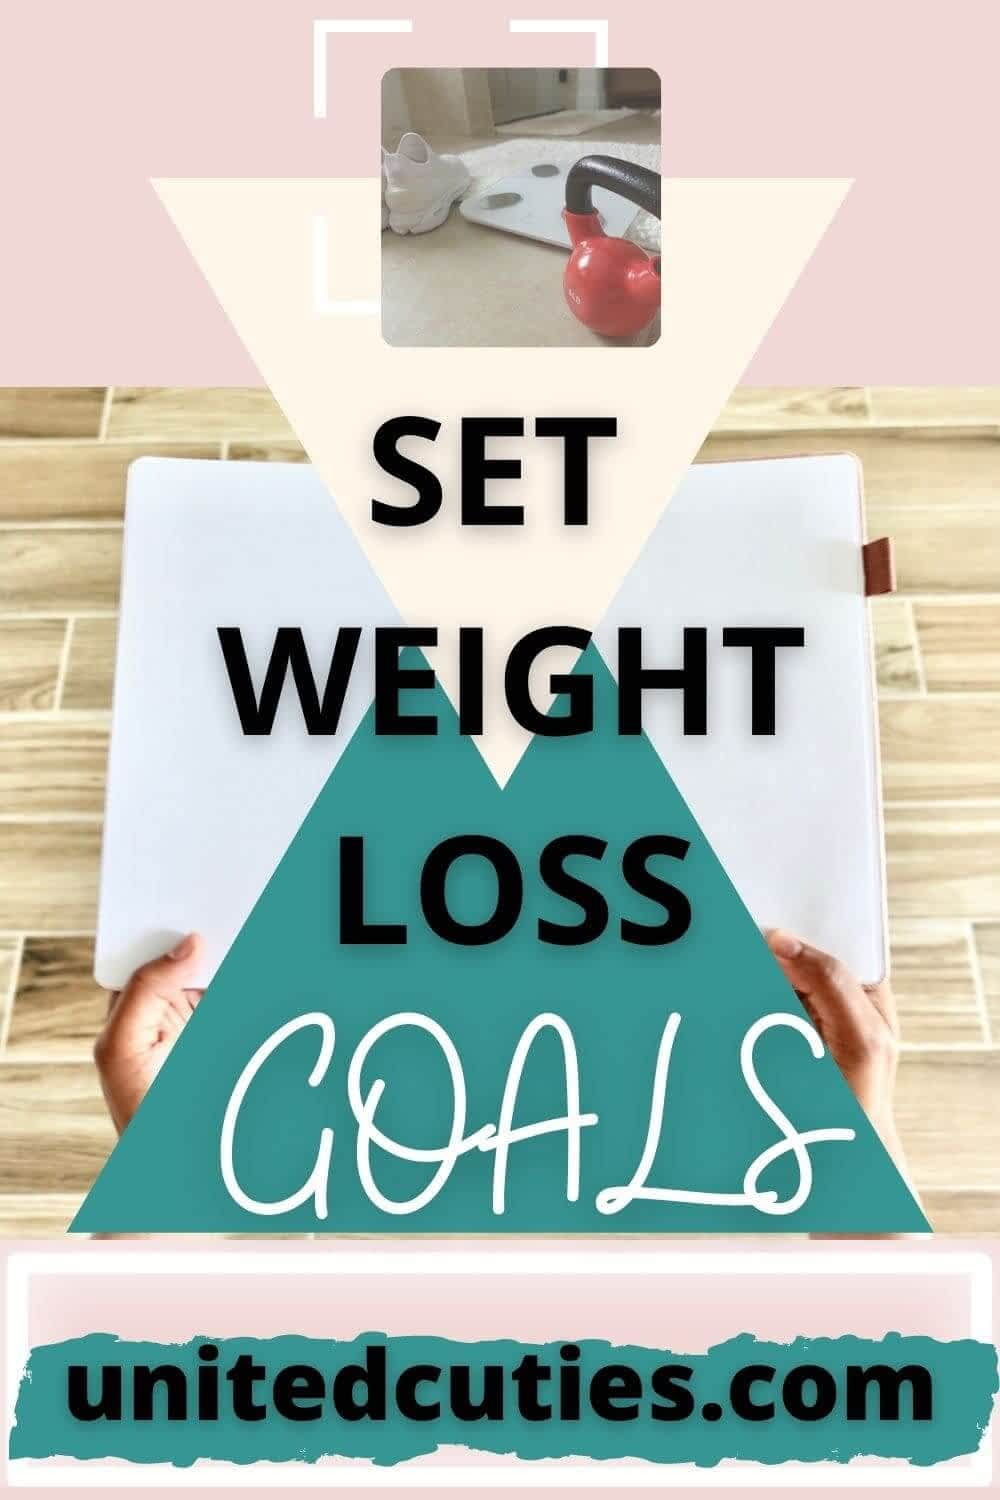 HOW TO SET WEIGHT LOSS GOALS – (THE RIGHT WAY)